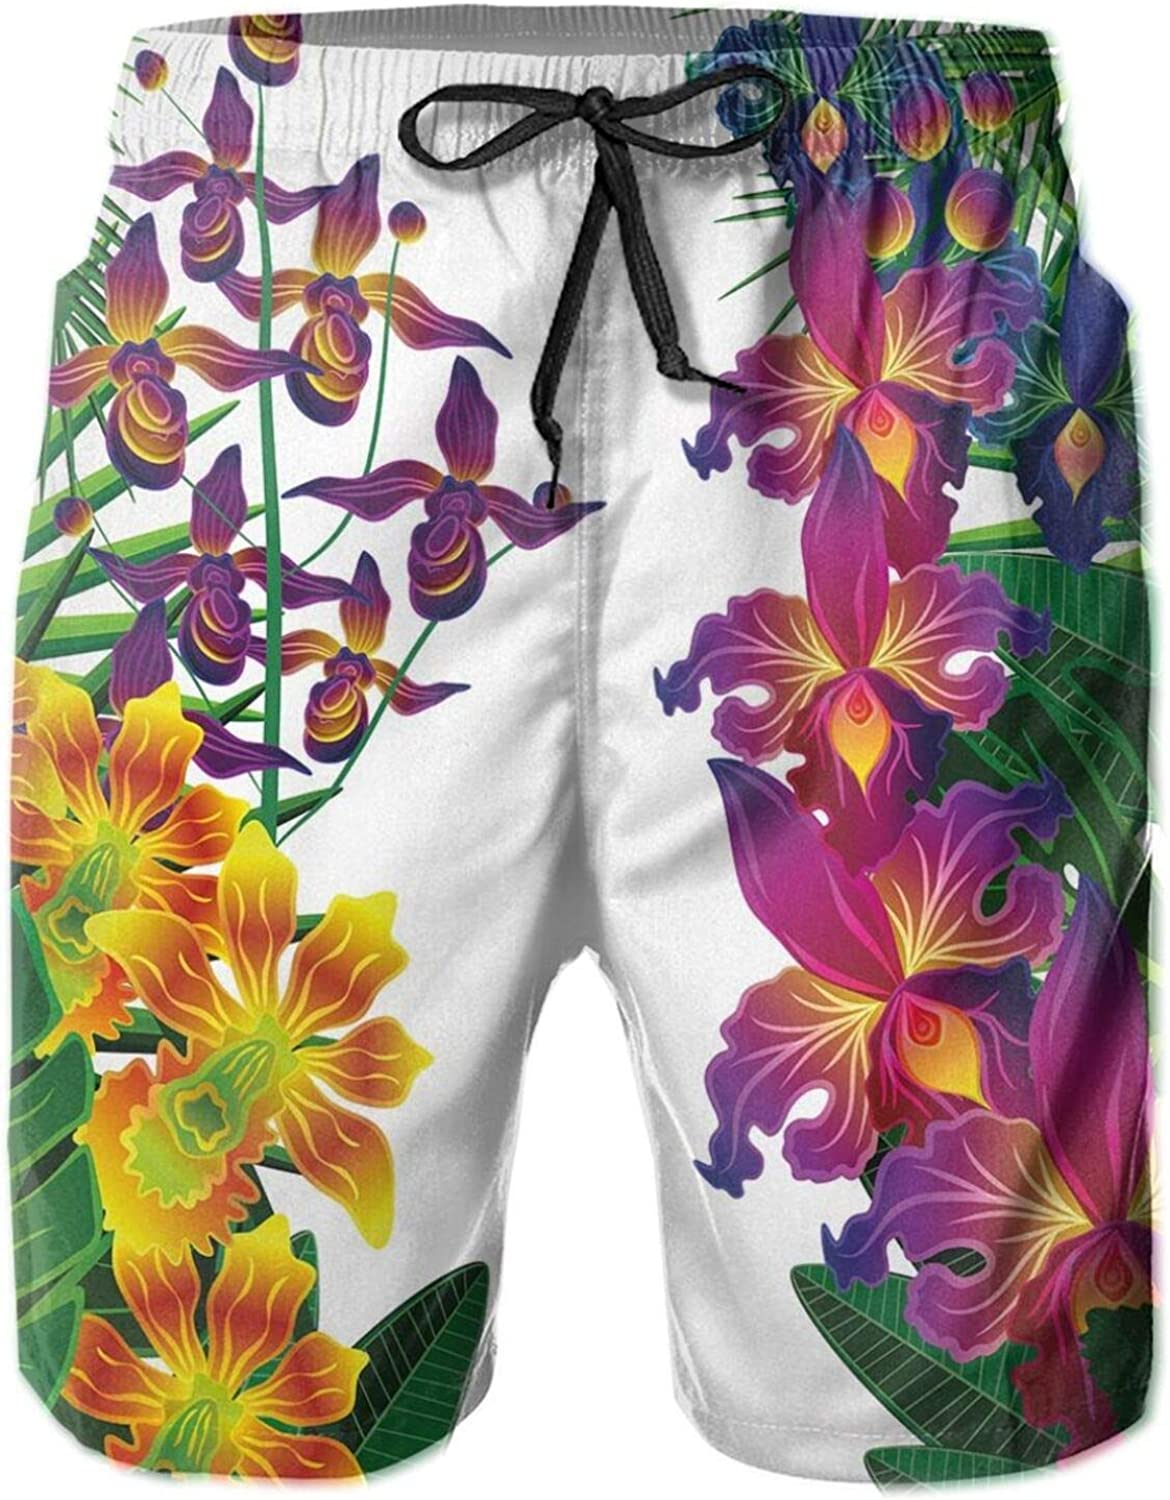 Flower Kahili Ginger Bamboo and Orchid Vivid Colored Tropic Accents Mens Swim Shorts Casual Workout Short Pants Drawstring Beach Shorts,M